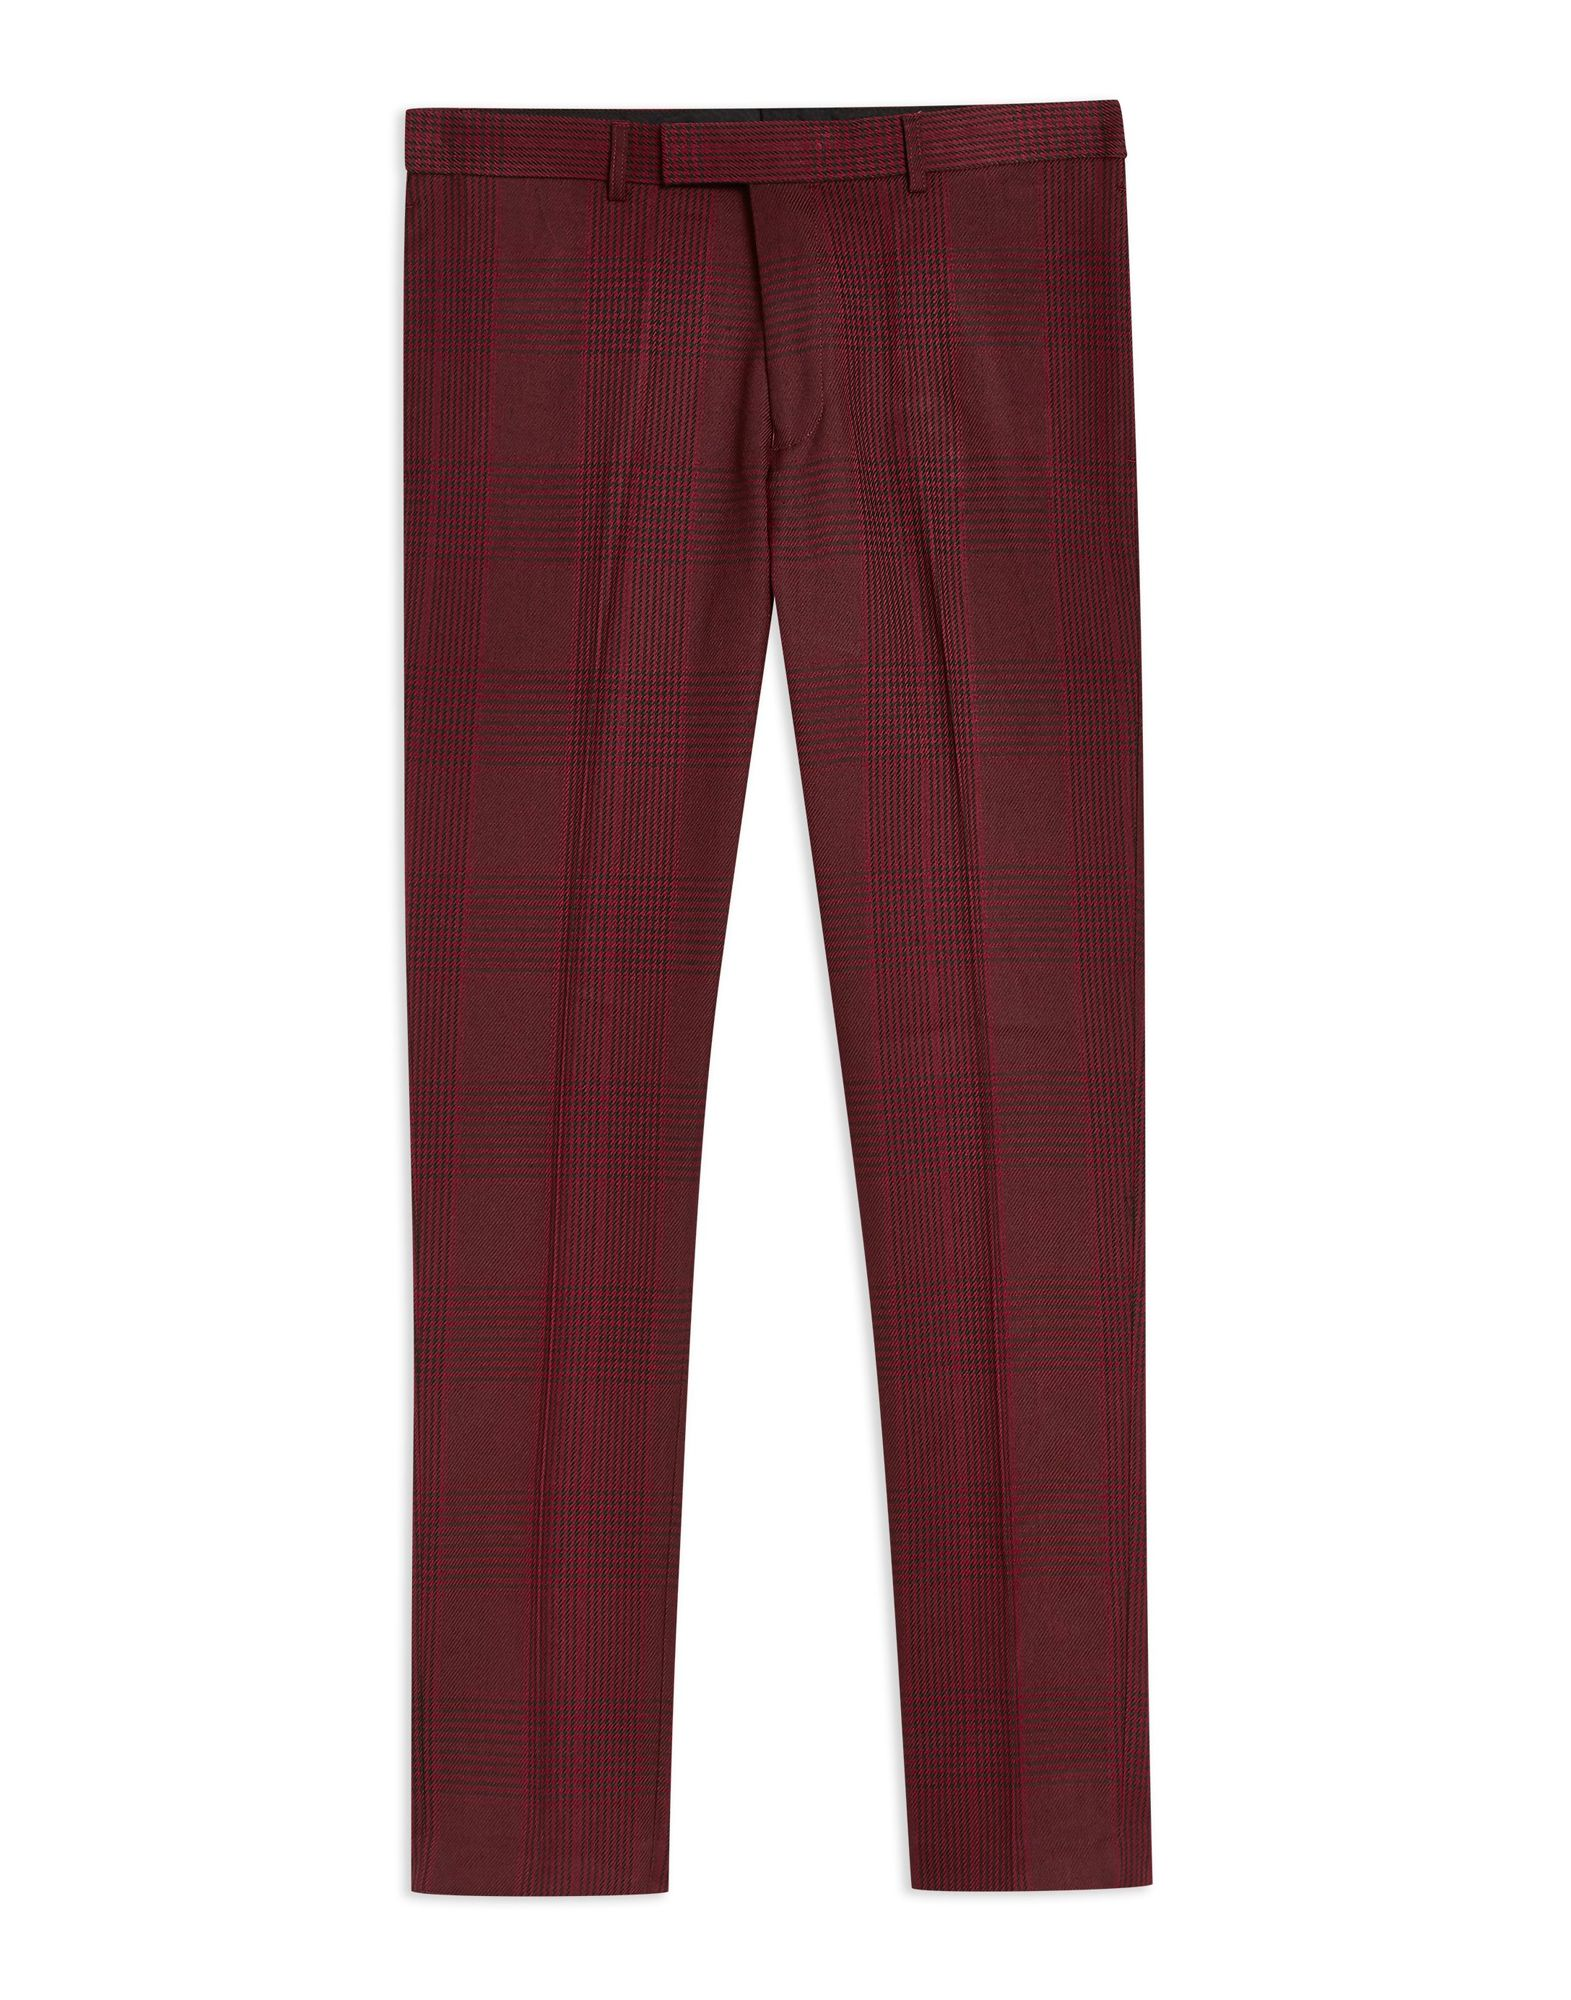 nos Topman rosso Check Skinny Trousers Trousers Trousers - uomo - 13313566QH 498